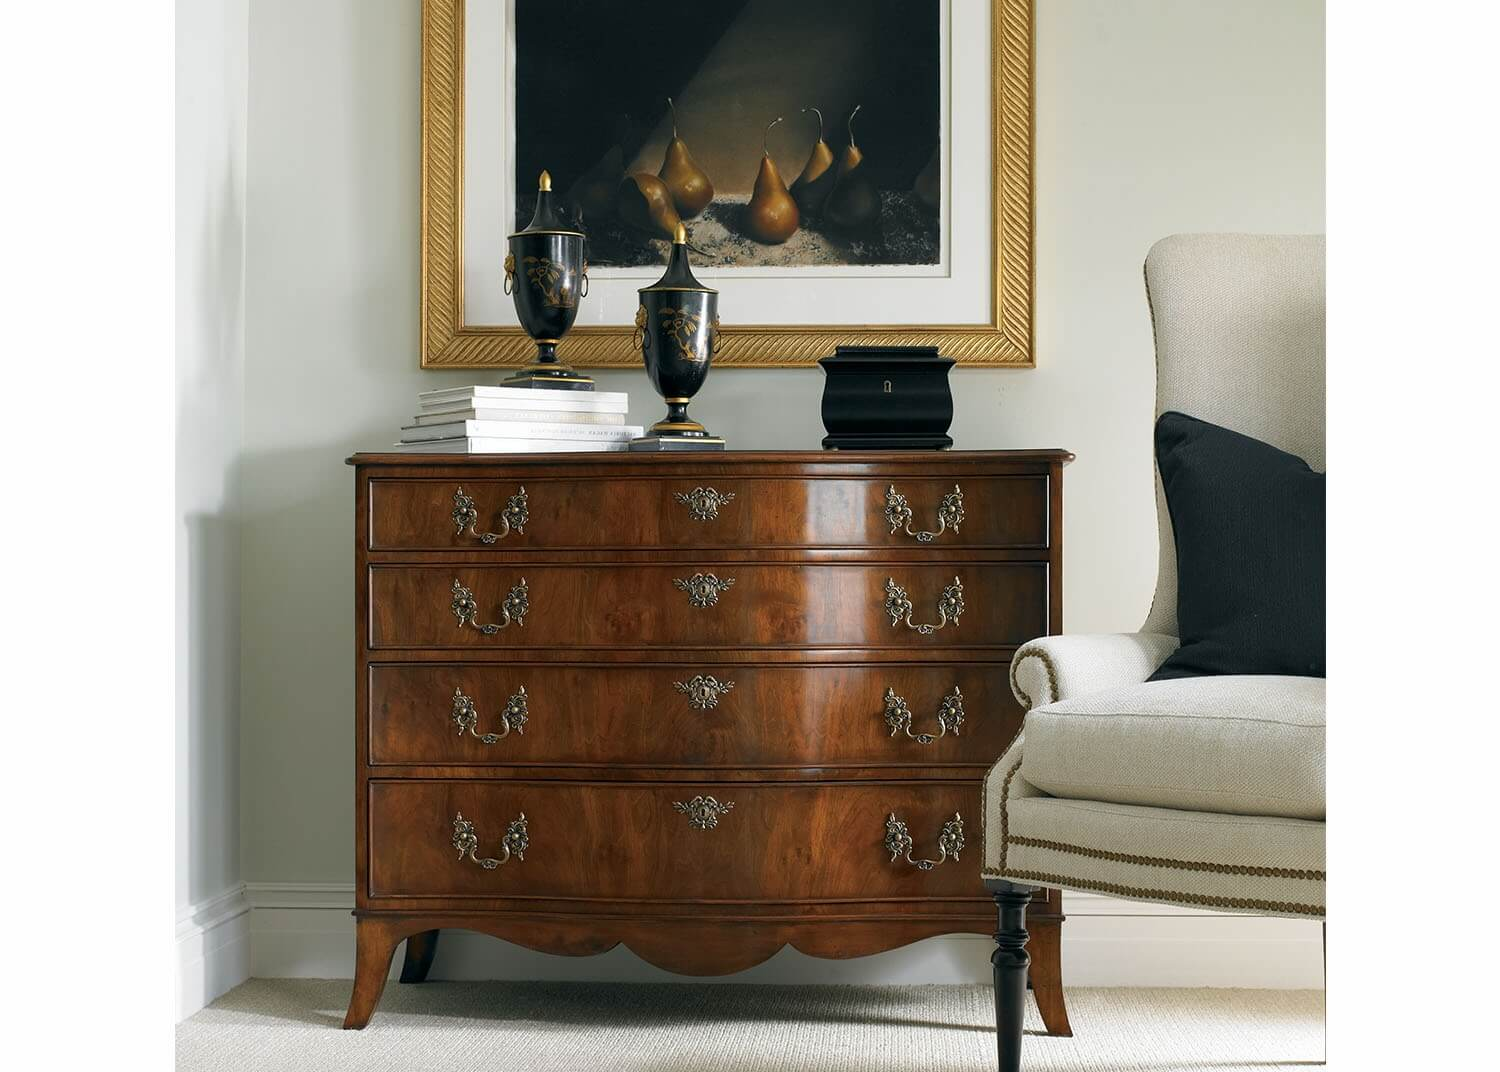 Hewitt_chest_of_drawers_commode_mobilart_furniture_meubles_decor_montreal b